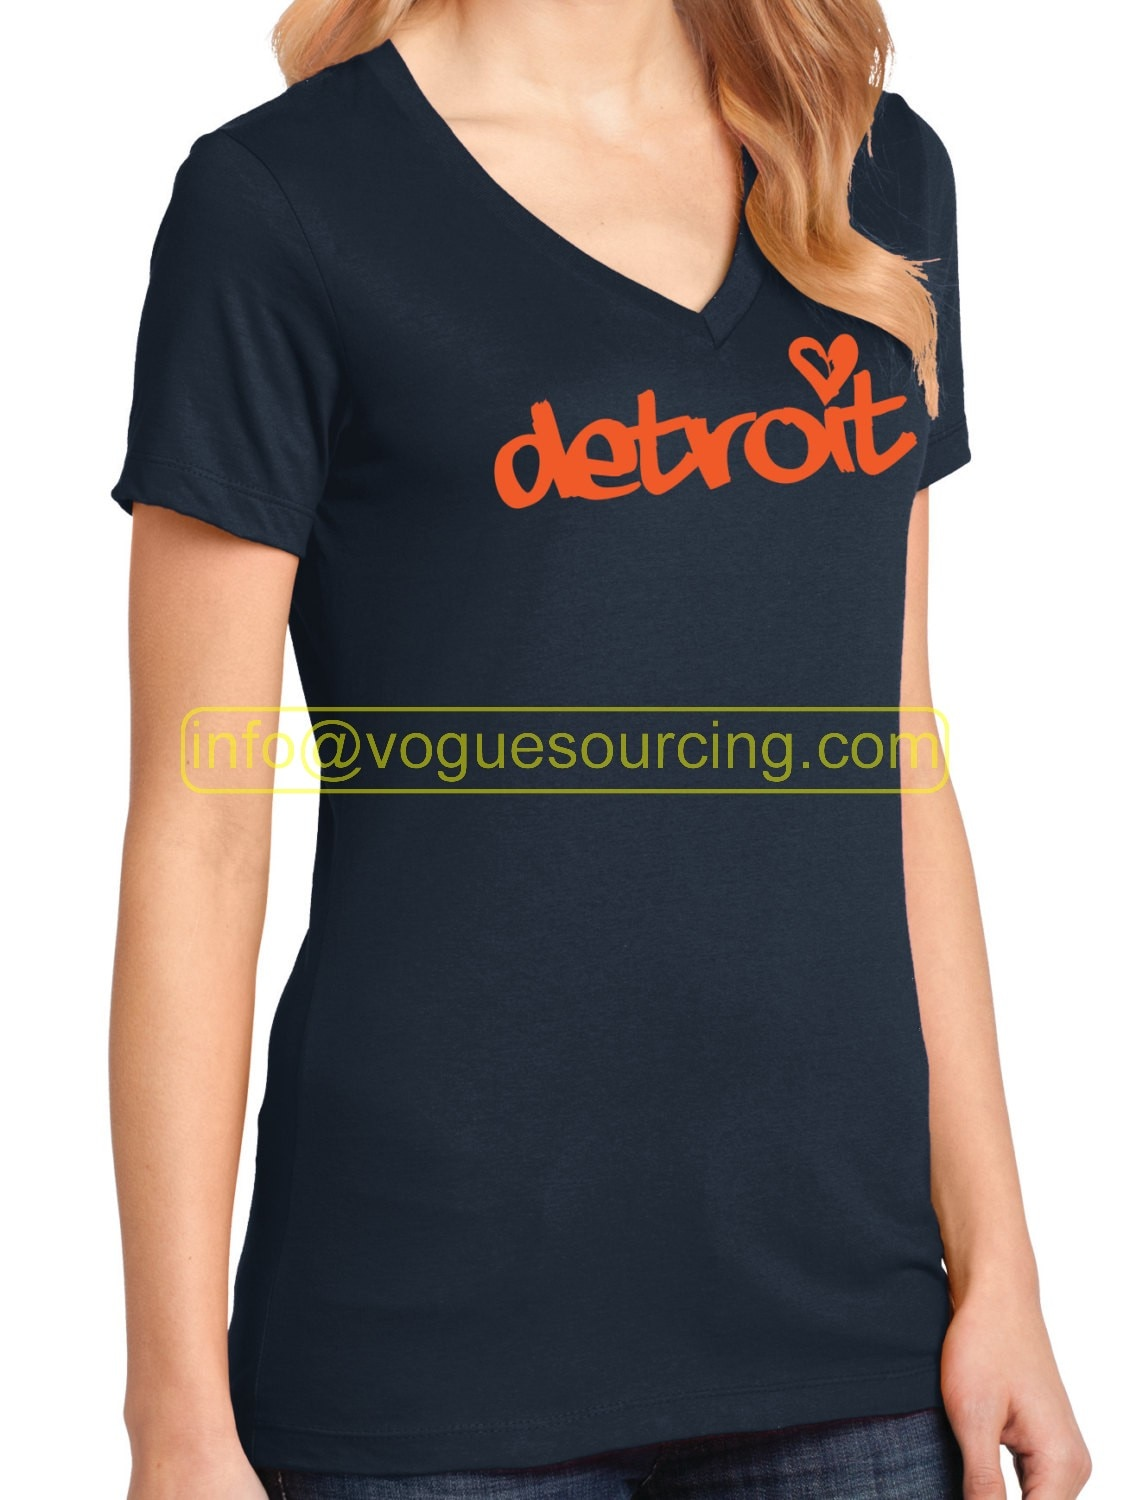 Design your own t shirt europe - Womens T Shirts Manufacturers Exporters In Tirupur India Asia Europe Uk